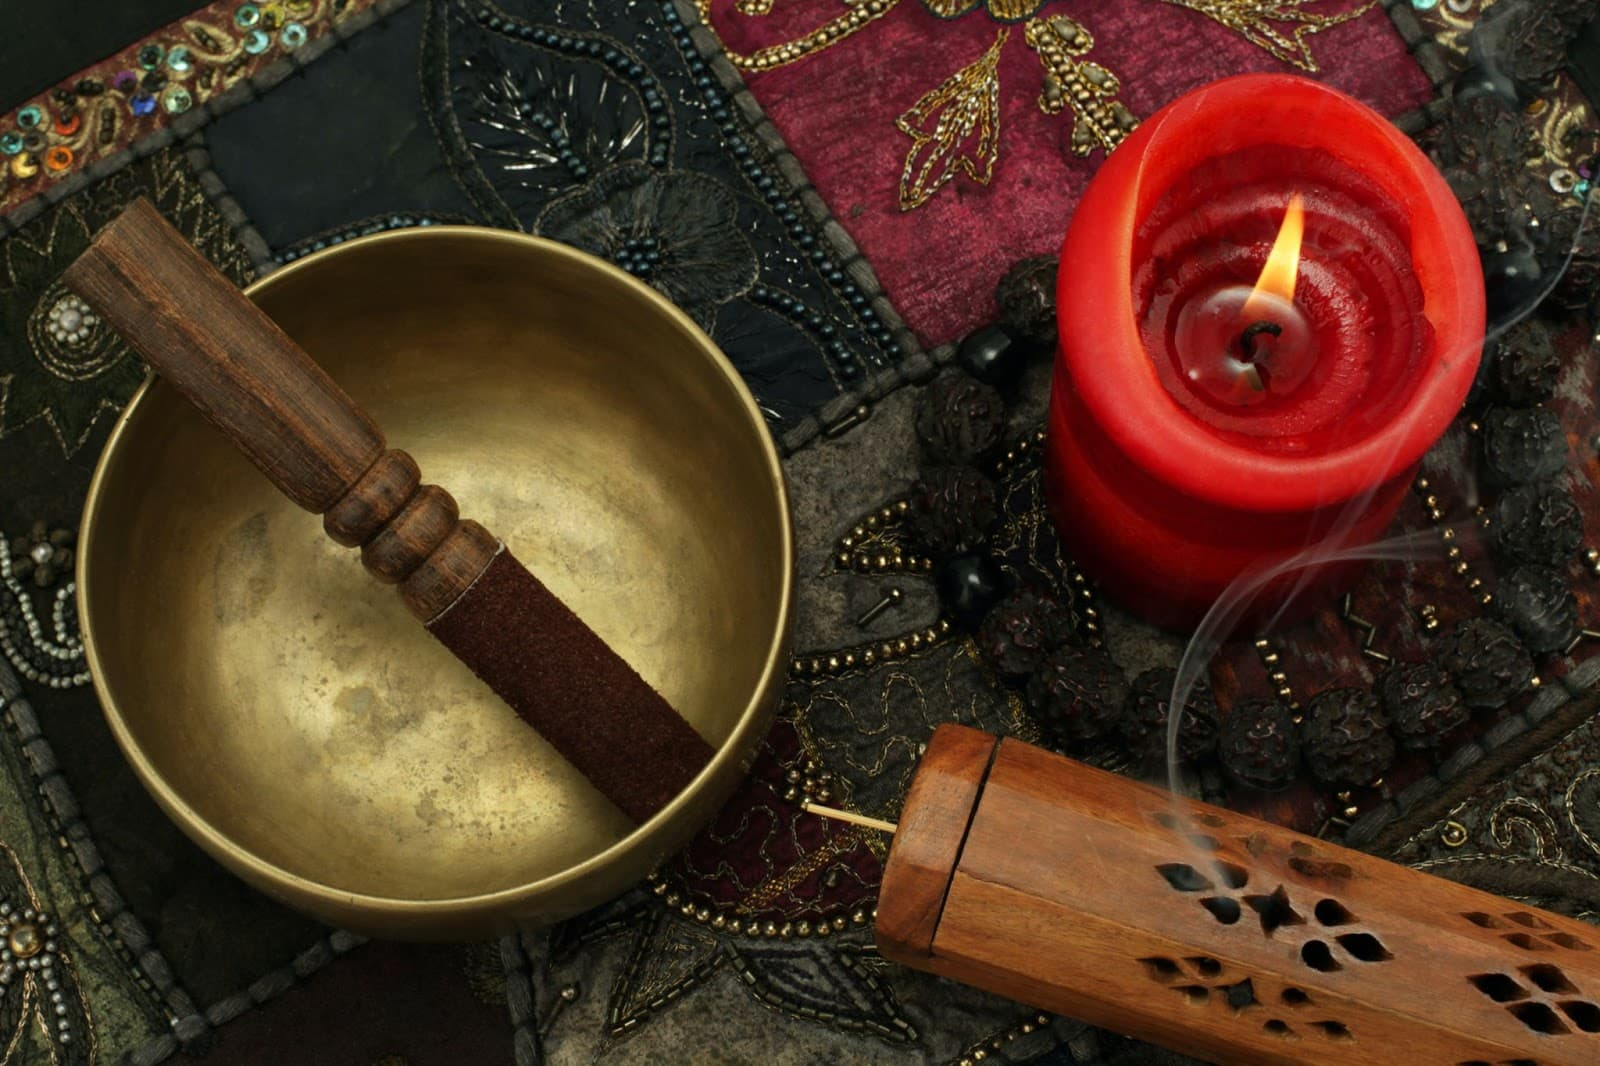 Tibetan Style Brass Singing Bowl with Mullet and Red Candle